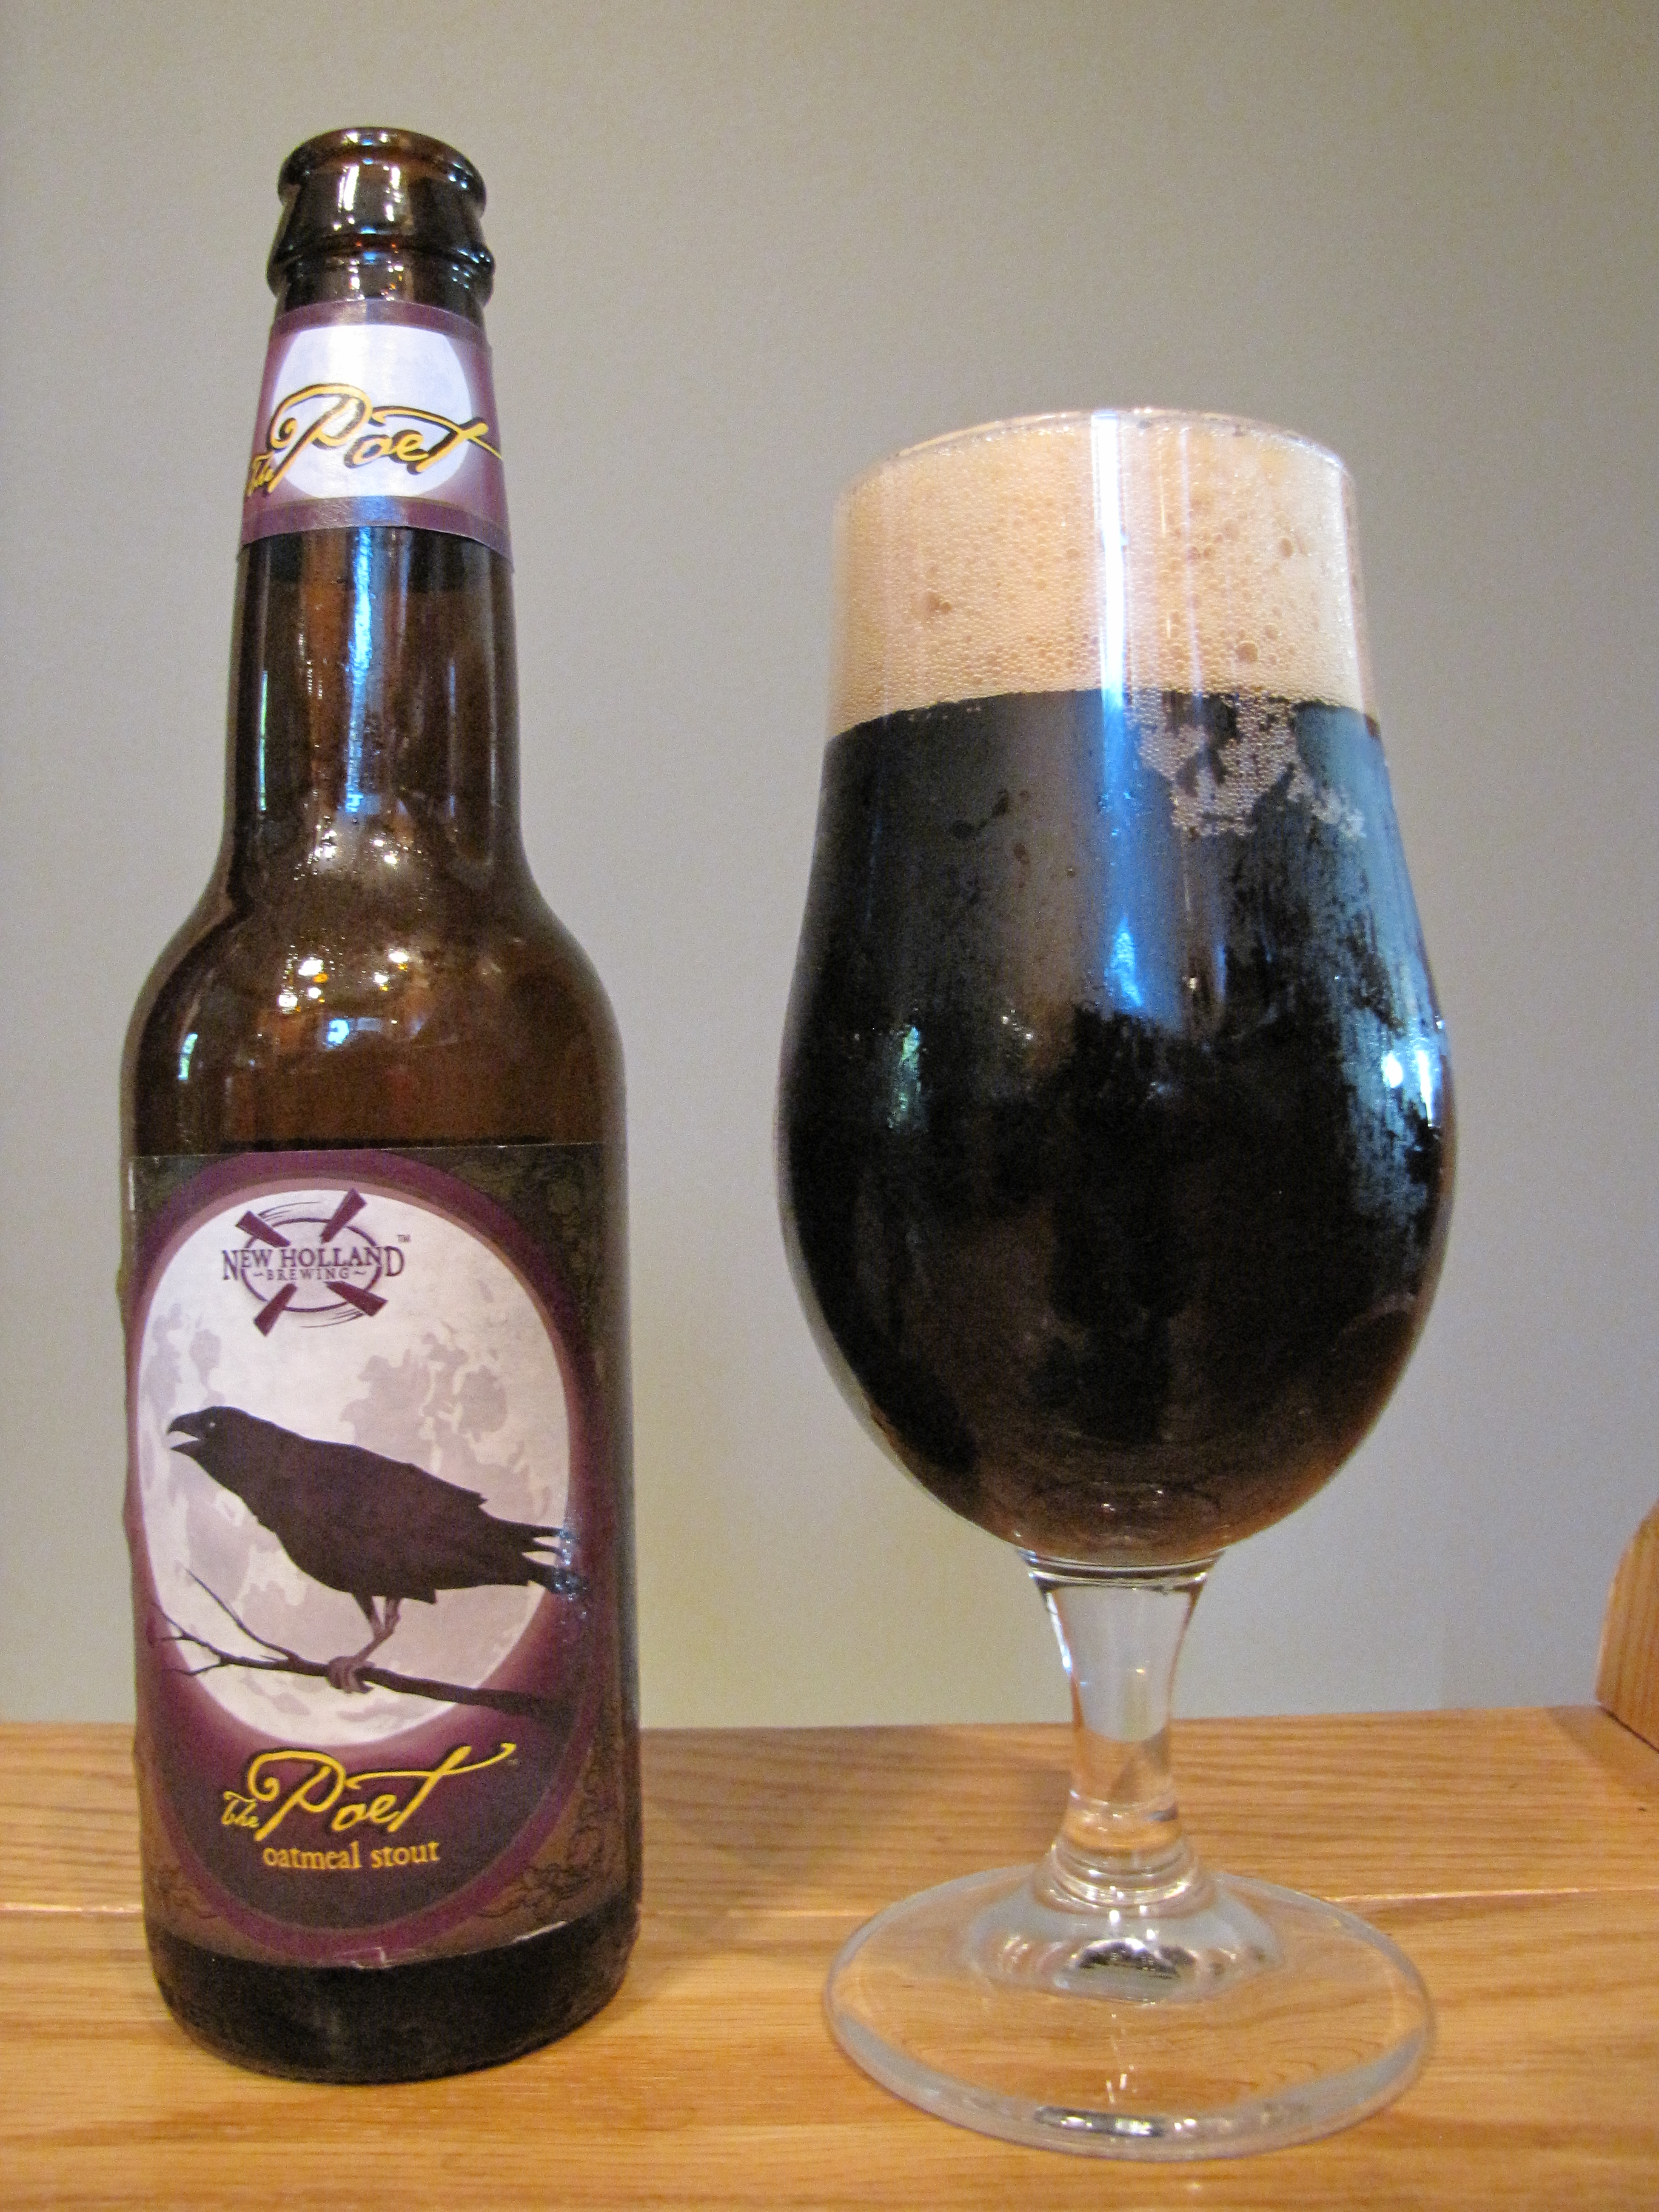 New Holland The Poet Oatmeal Stout